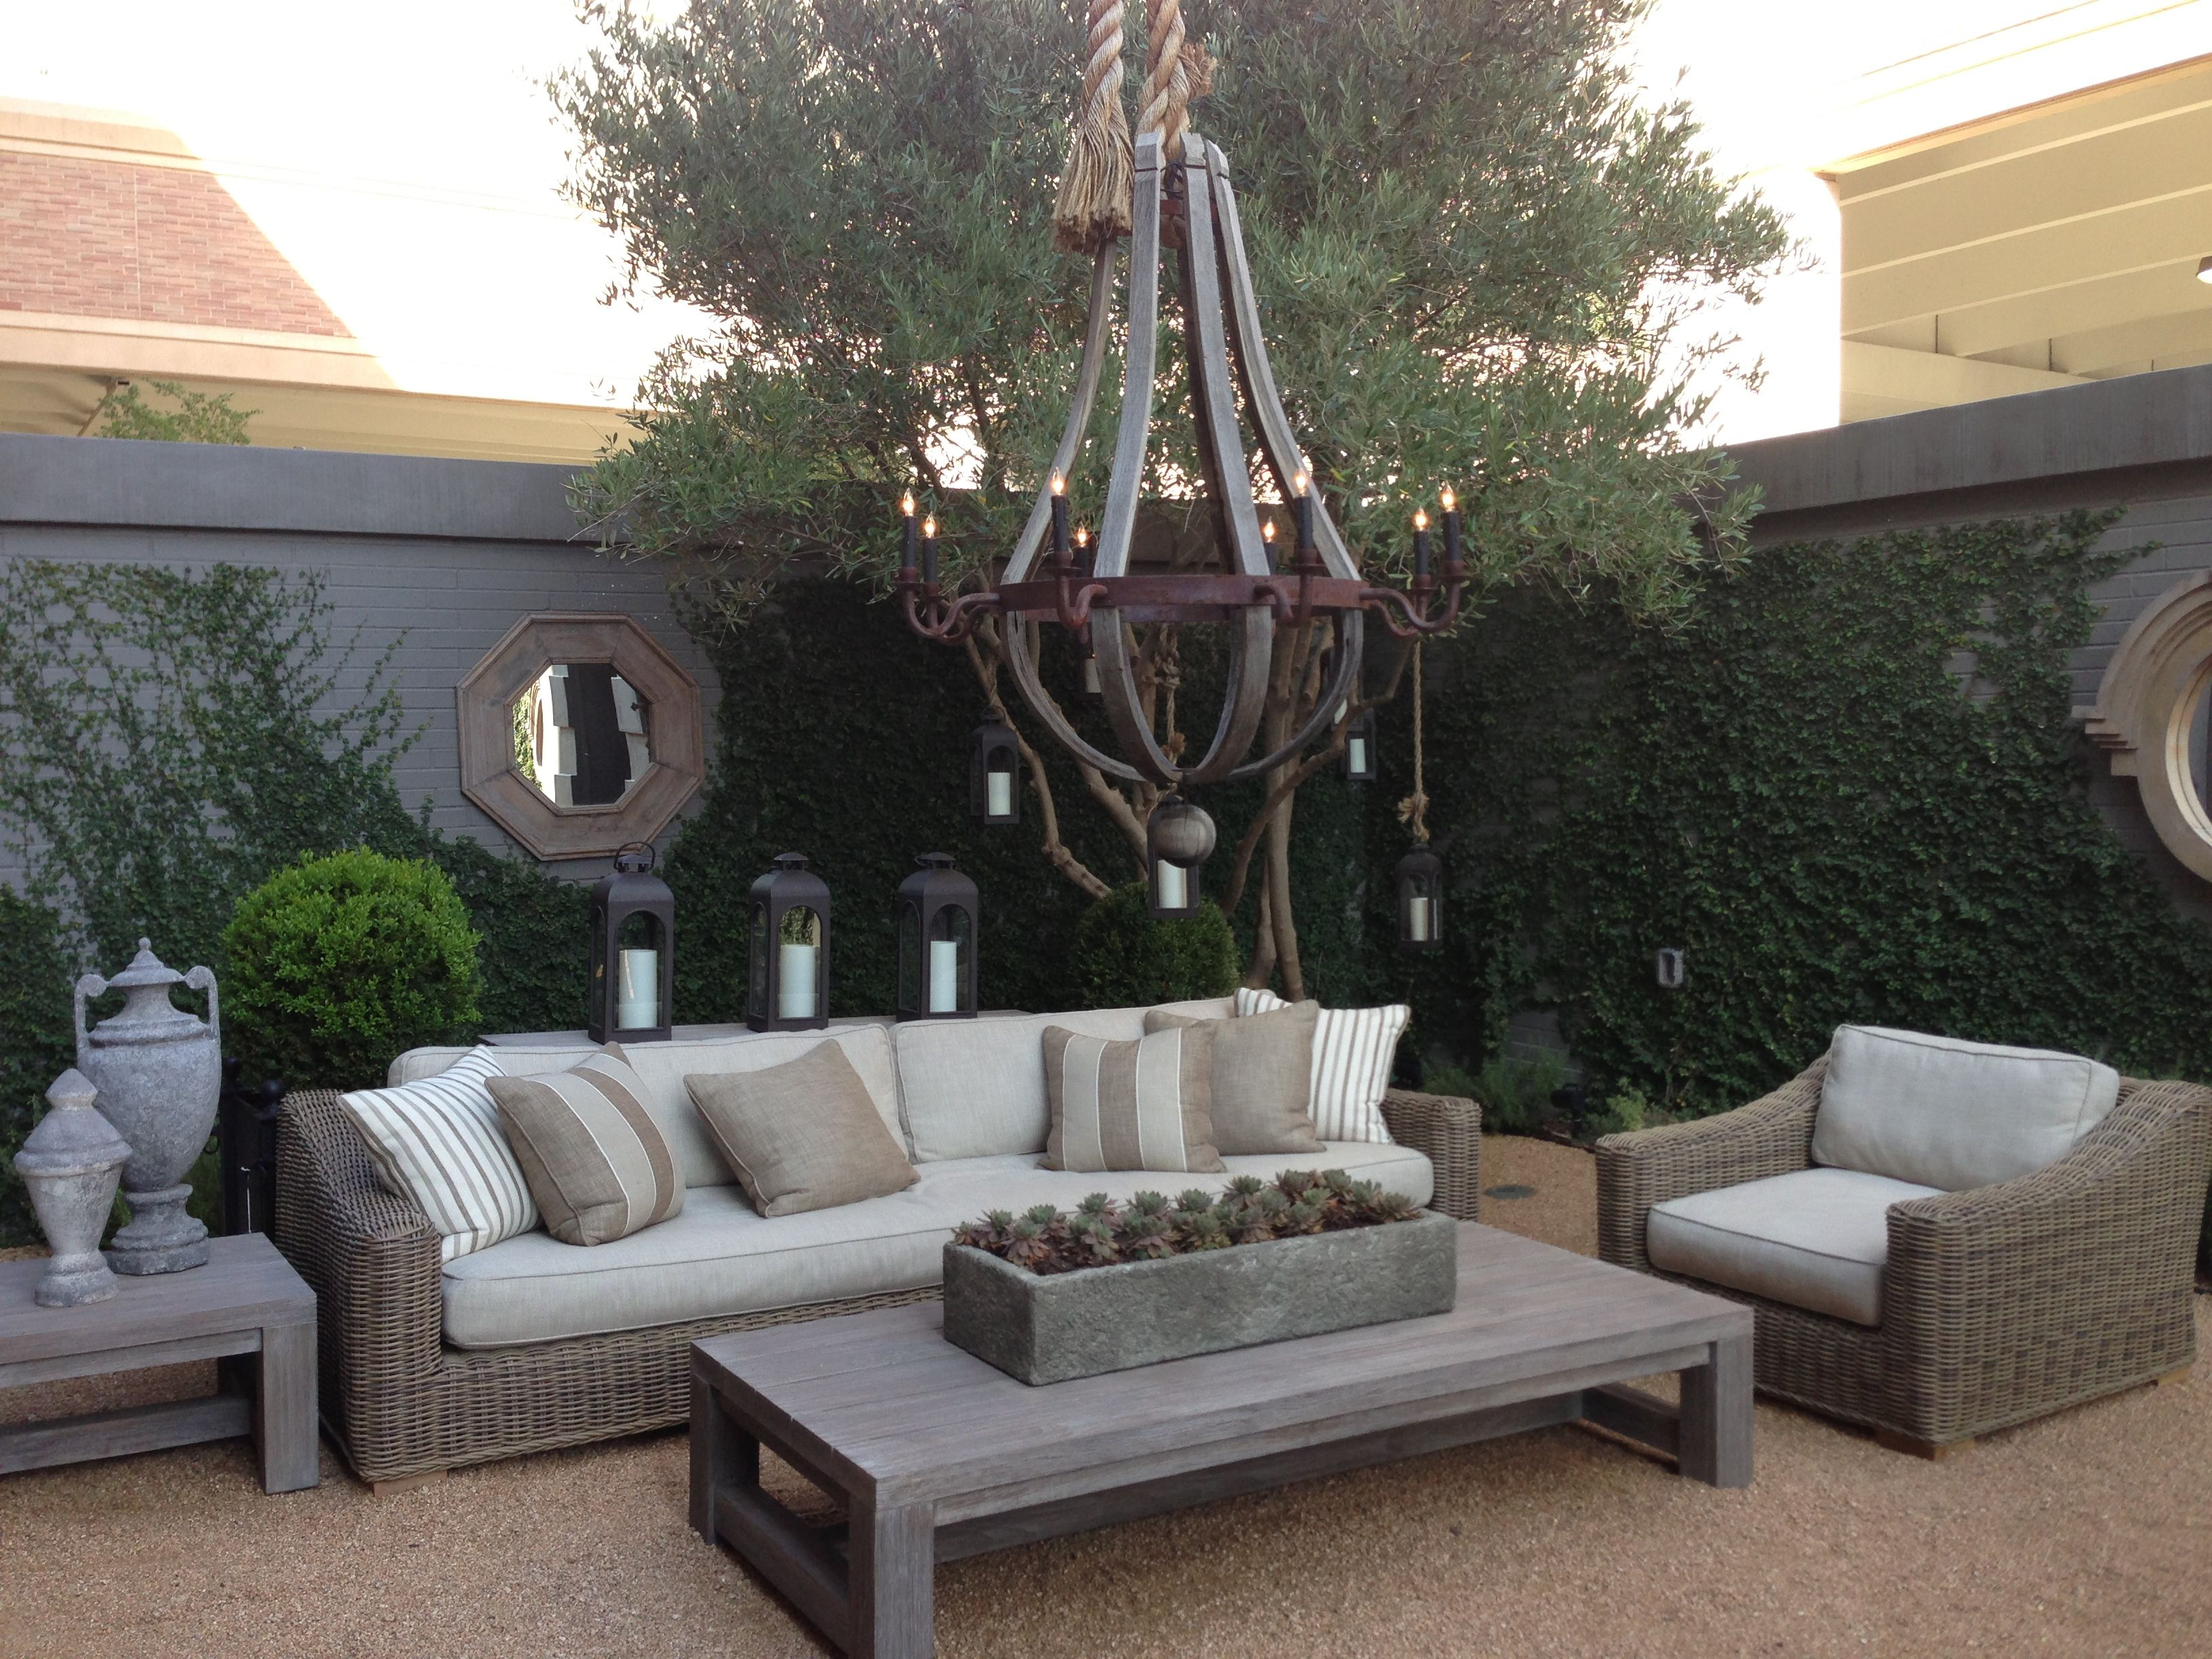 Outdoor living by restoration hardware summer for Restoration hardware outdoor dining